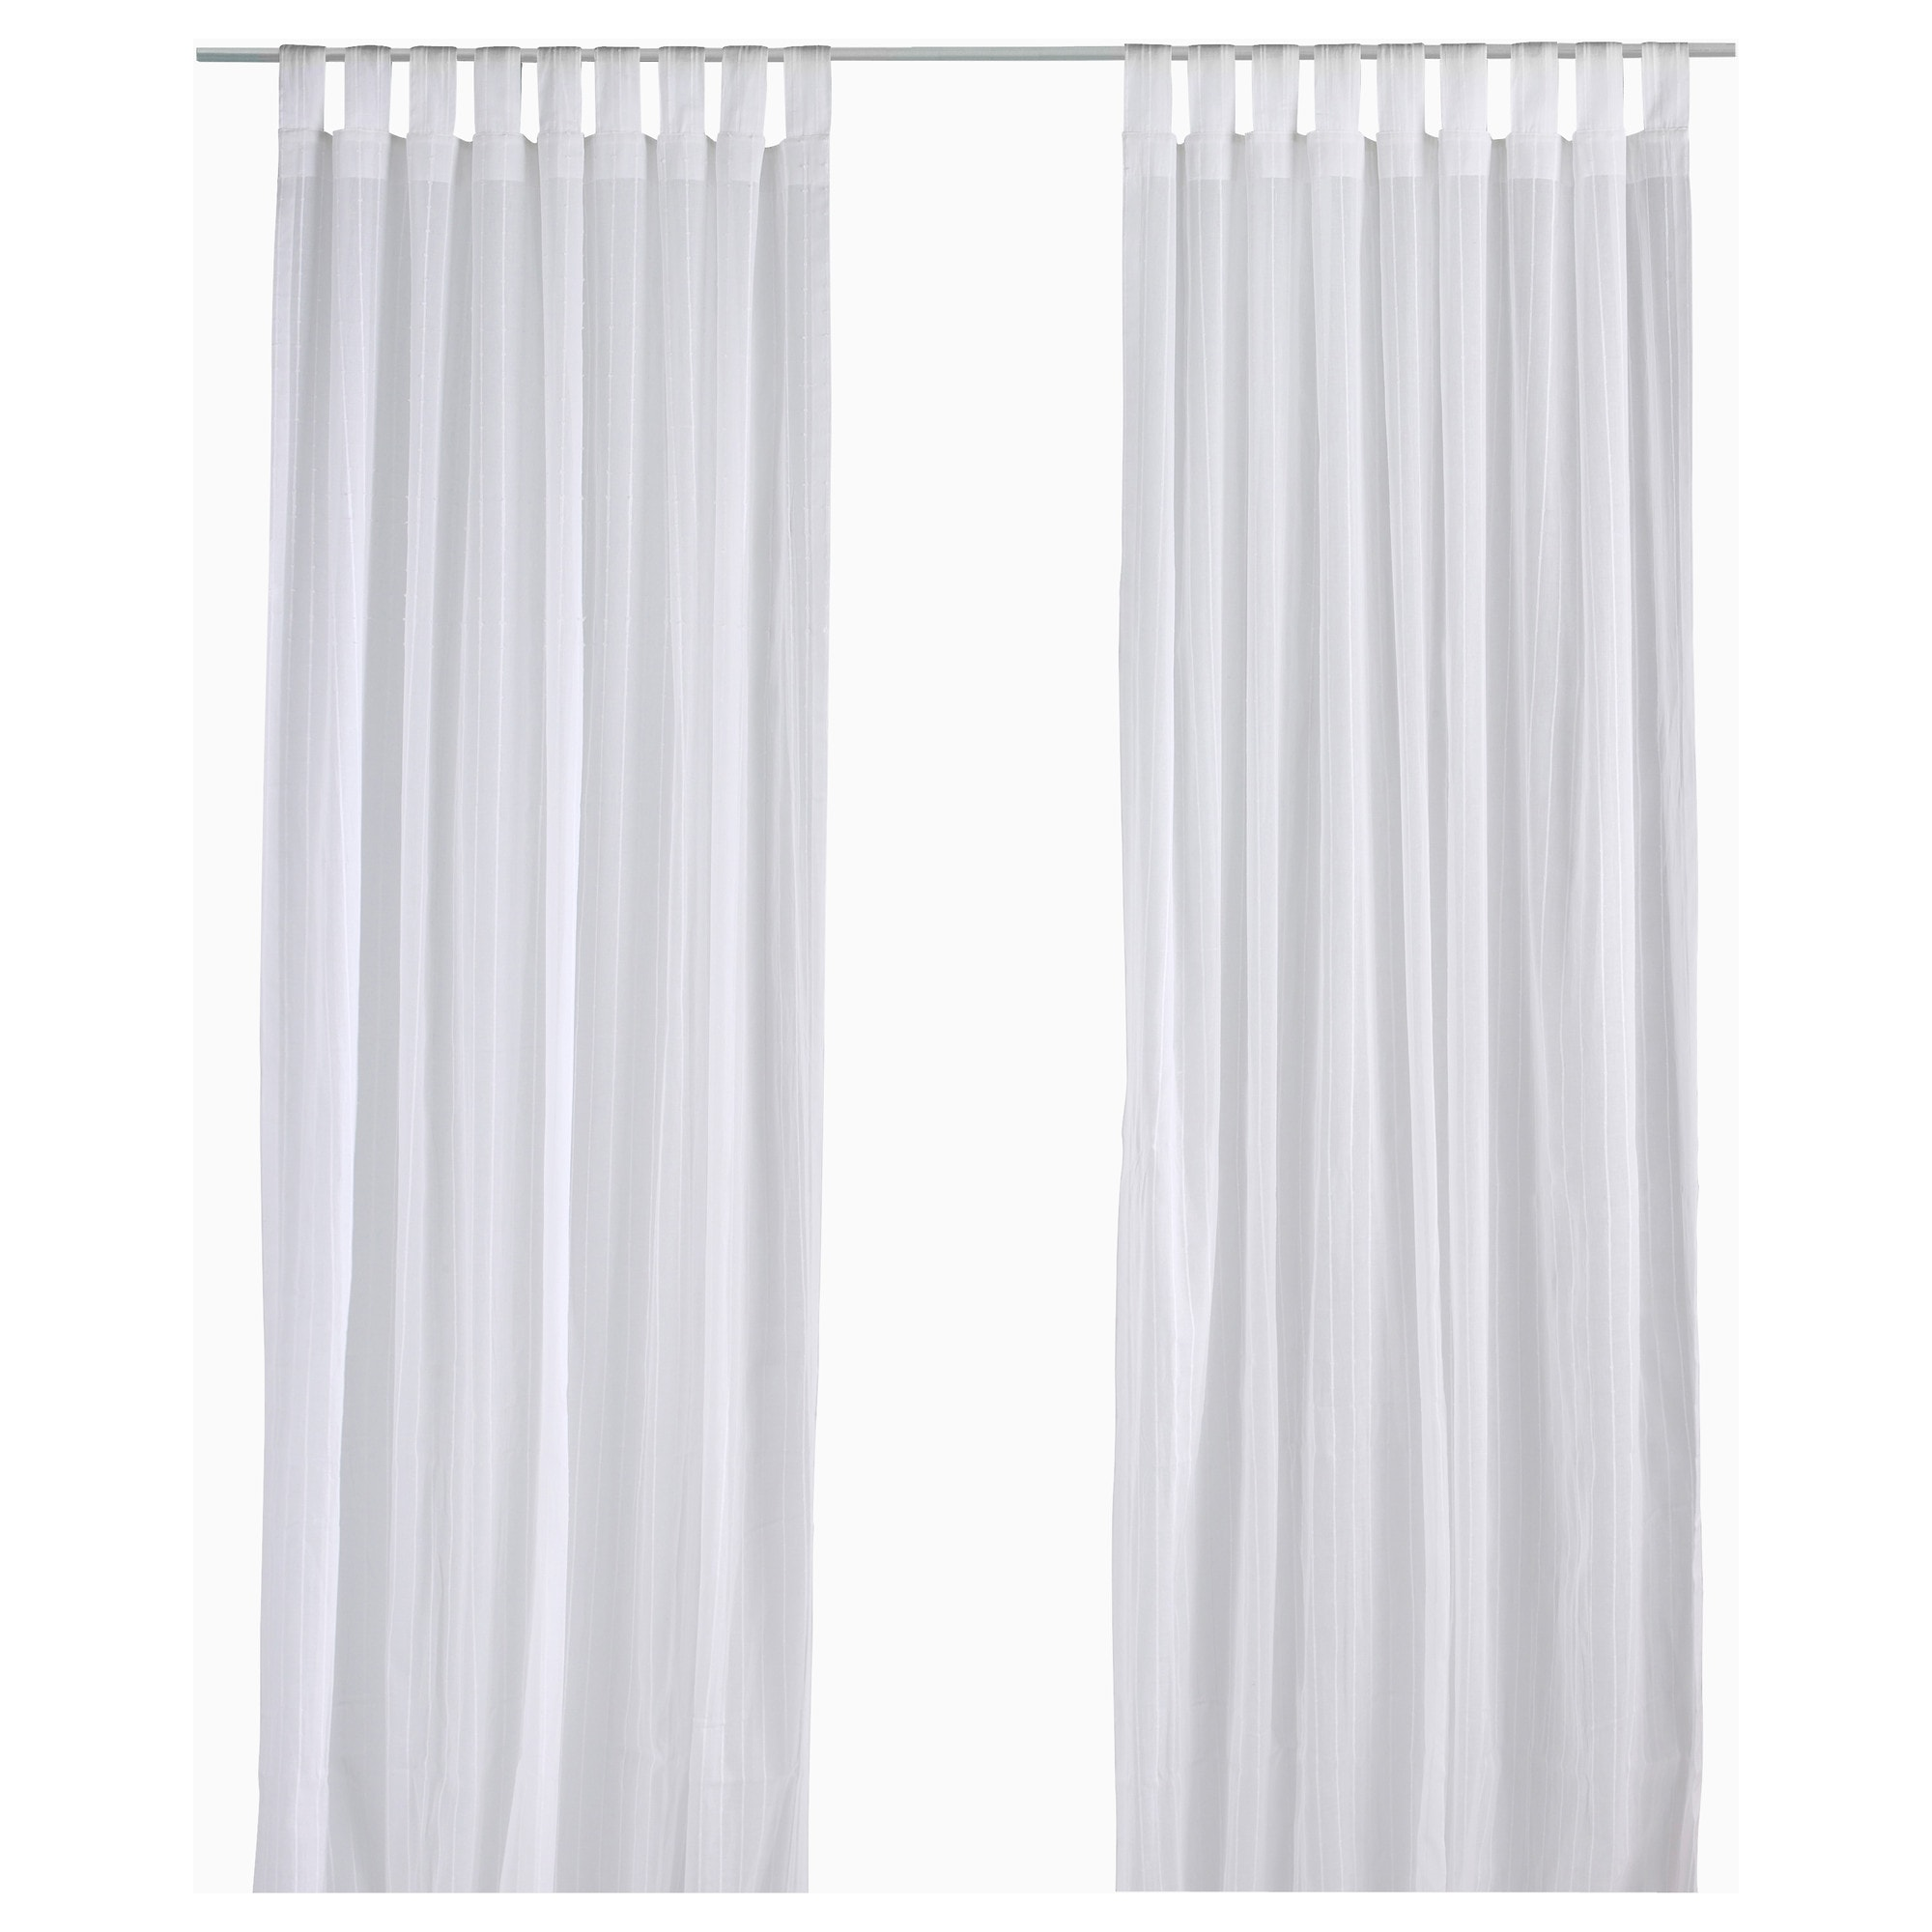 White Curtains curtains - living room & bedroom curtains - ikea